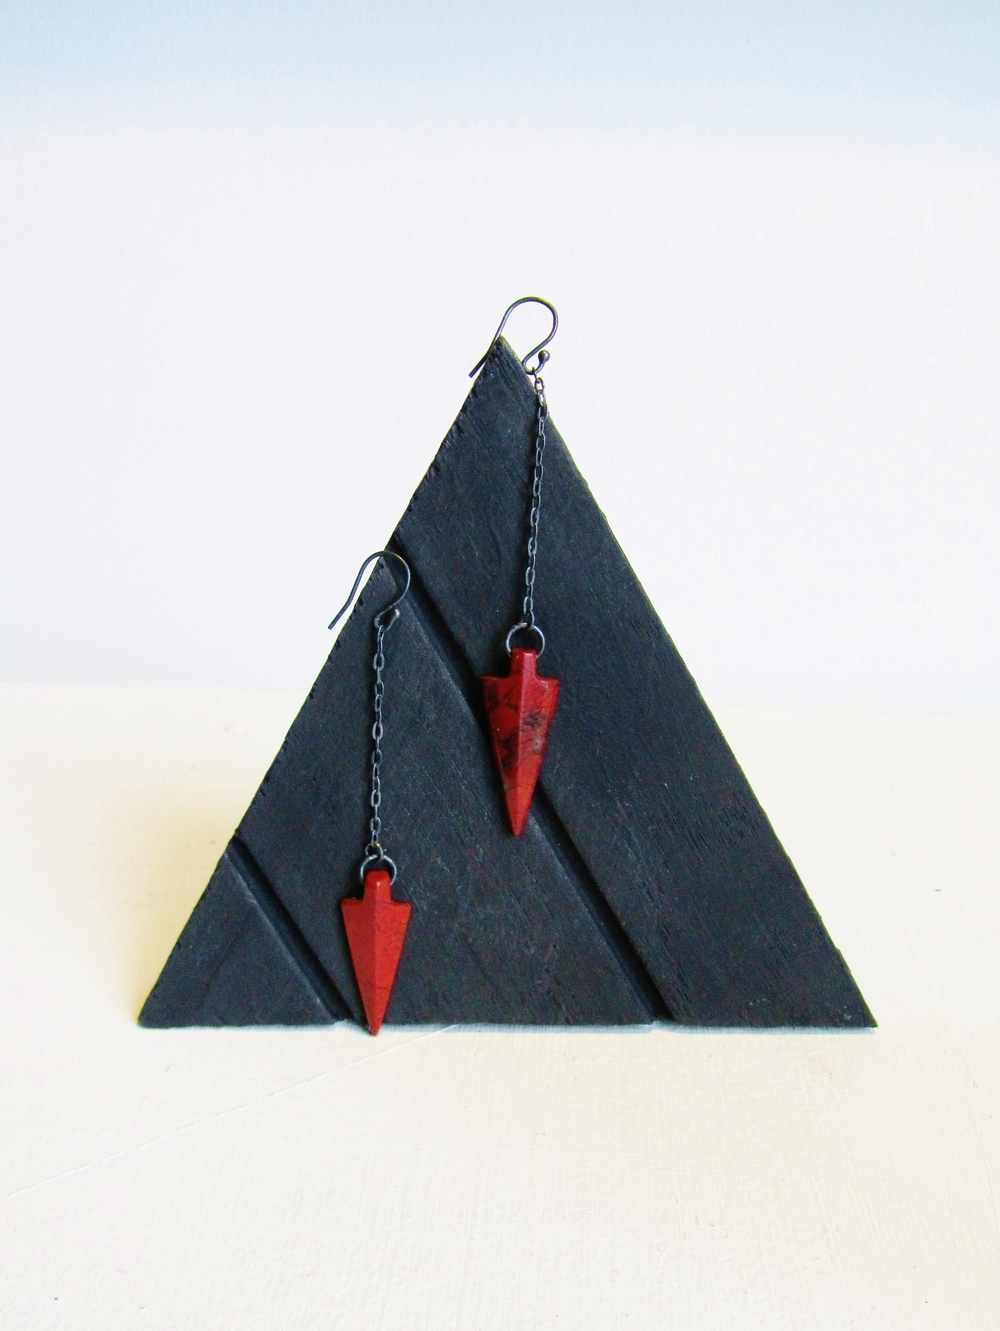 jade mellor red jasper earrings triangle arrowhead.JPG